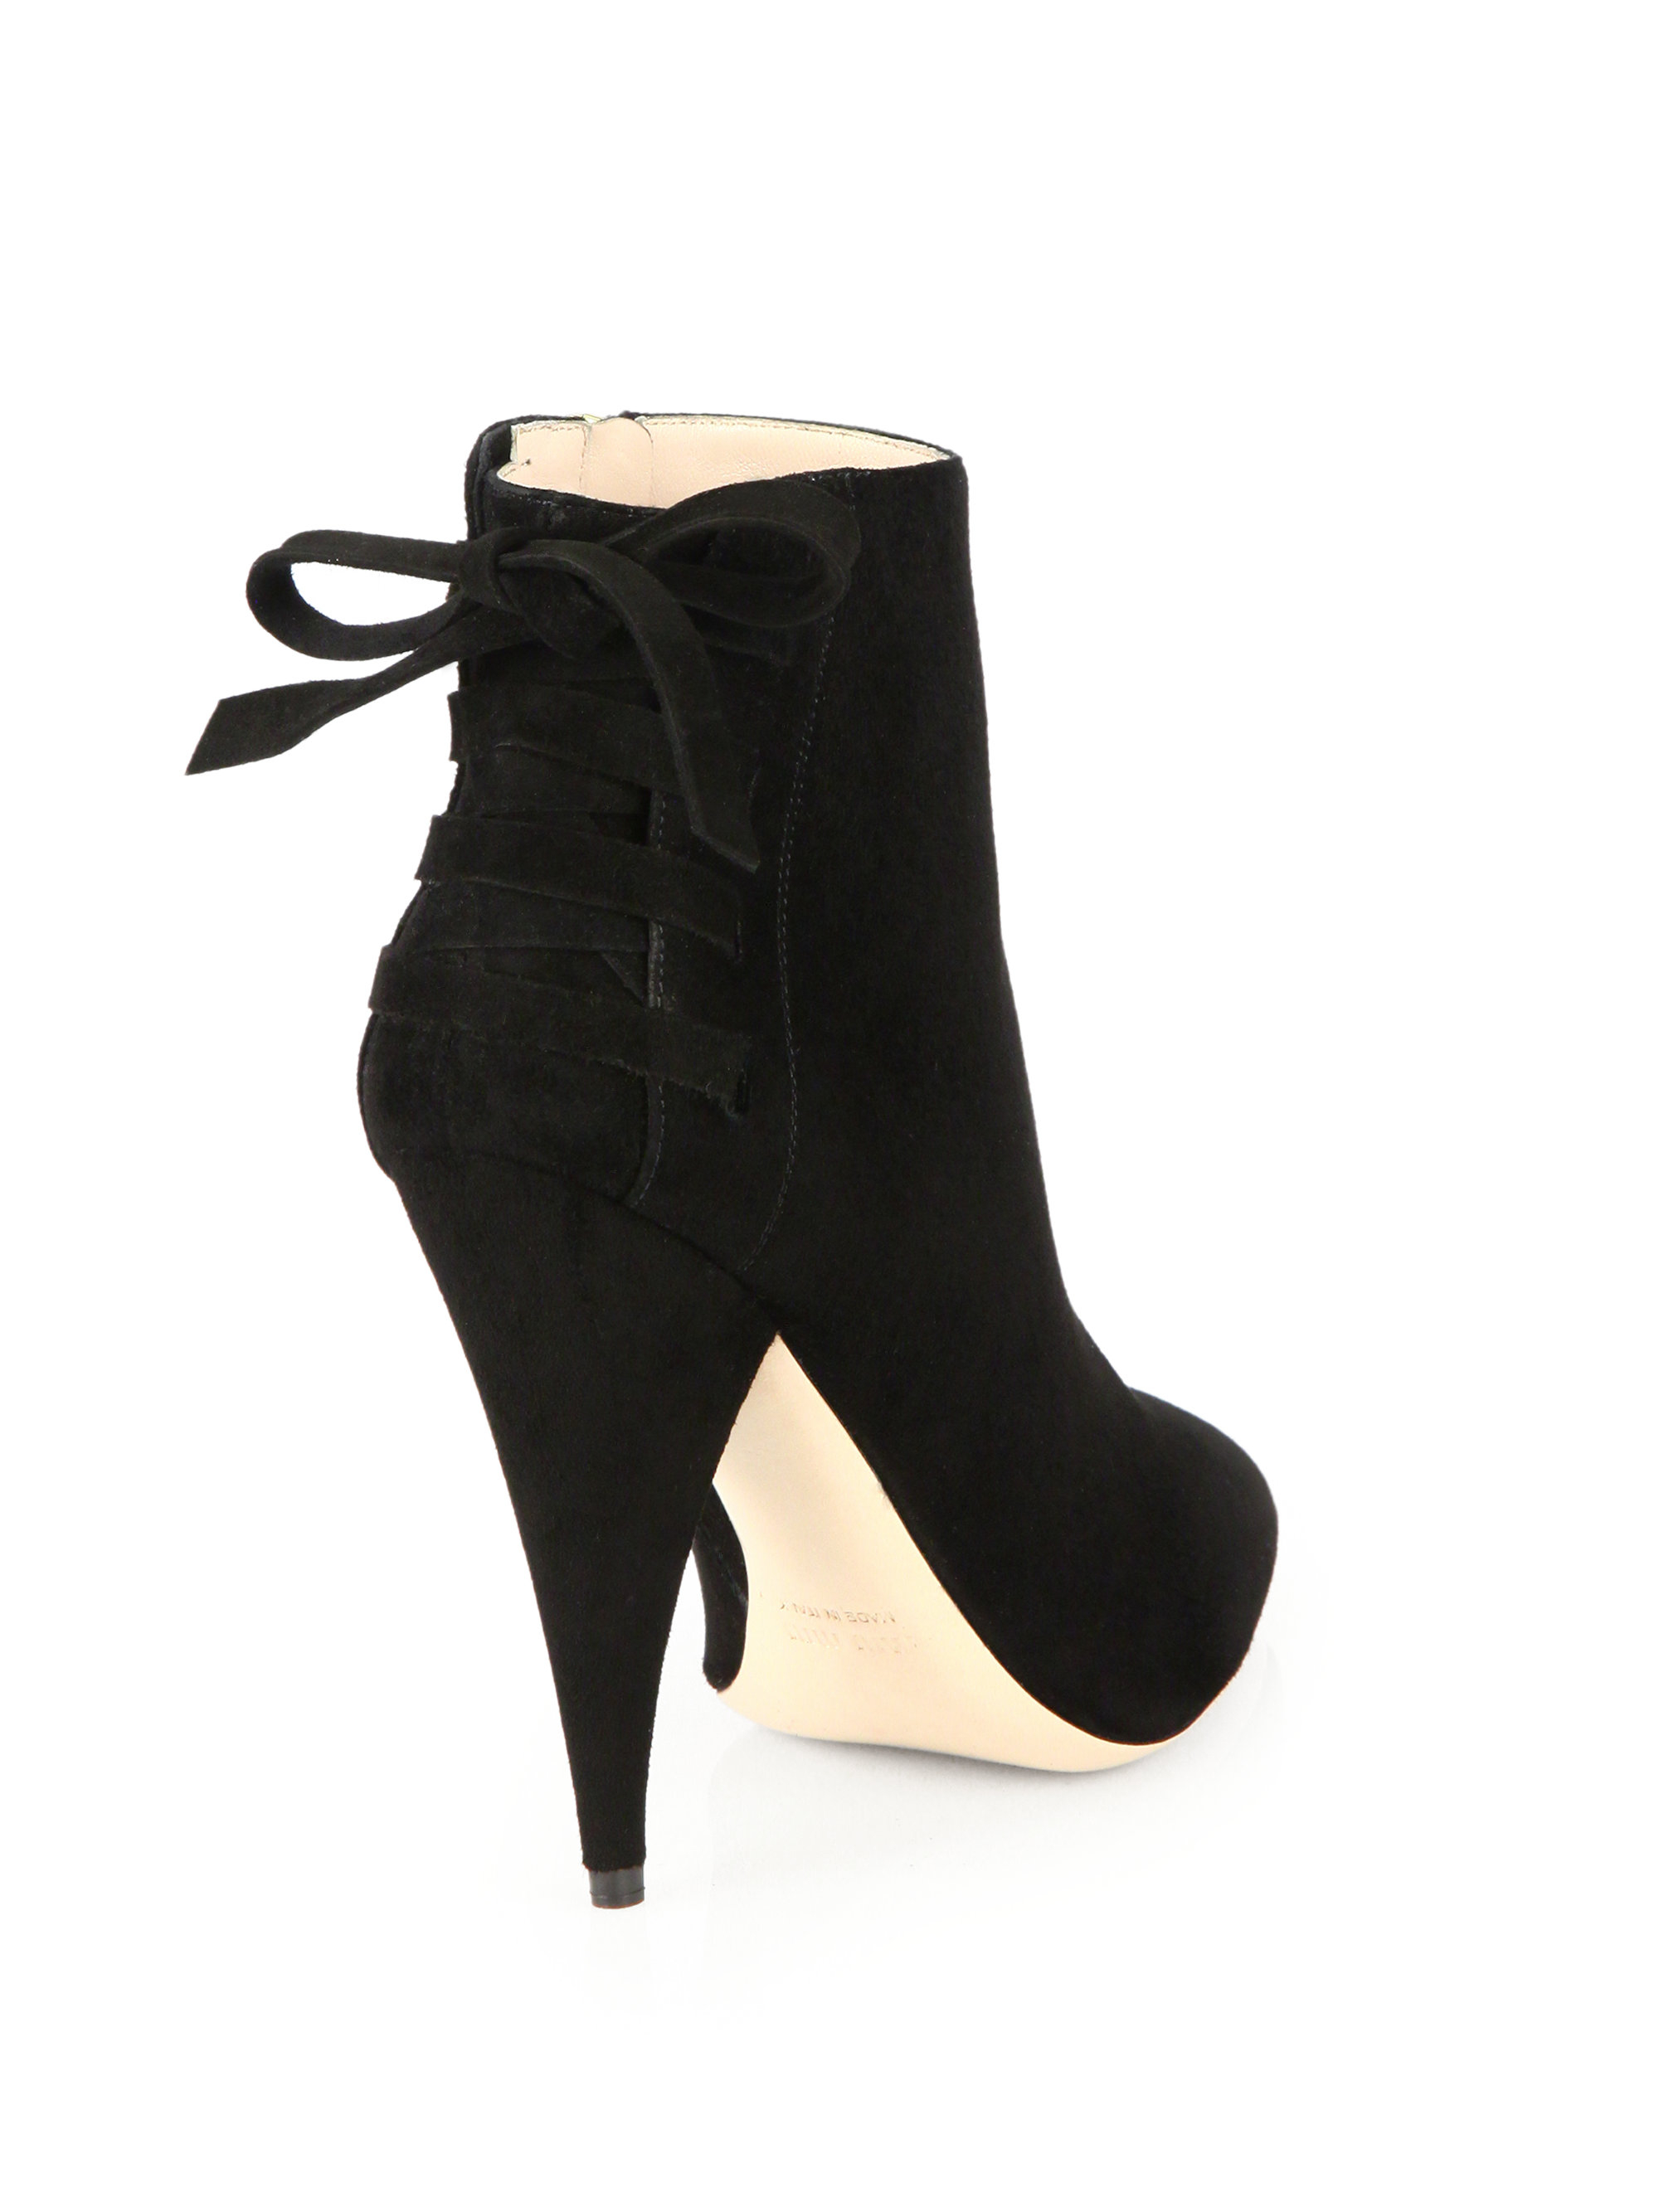 Miu miu Suede Back-Tie Ankle Boots in Black | Lyst